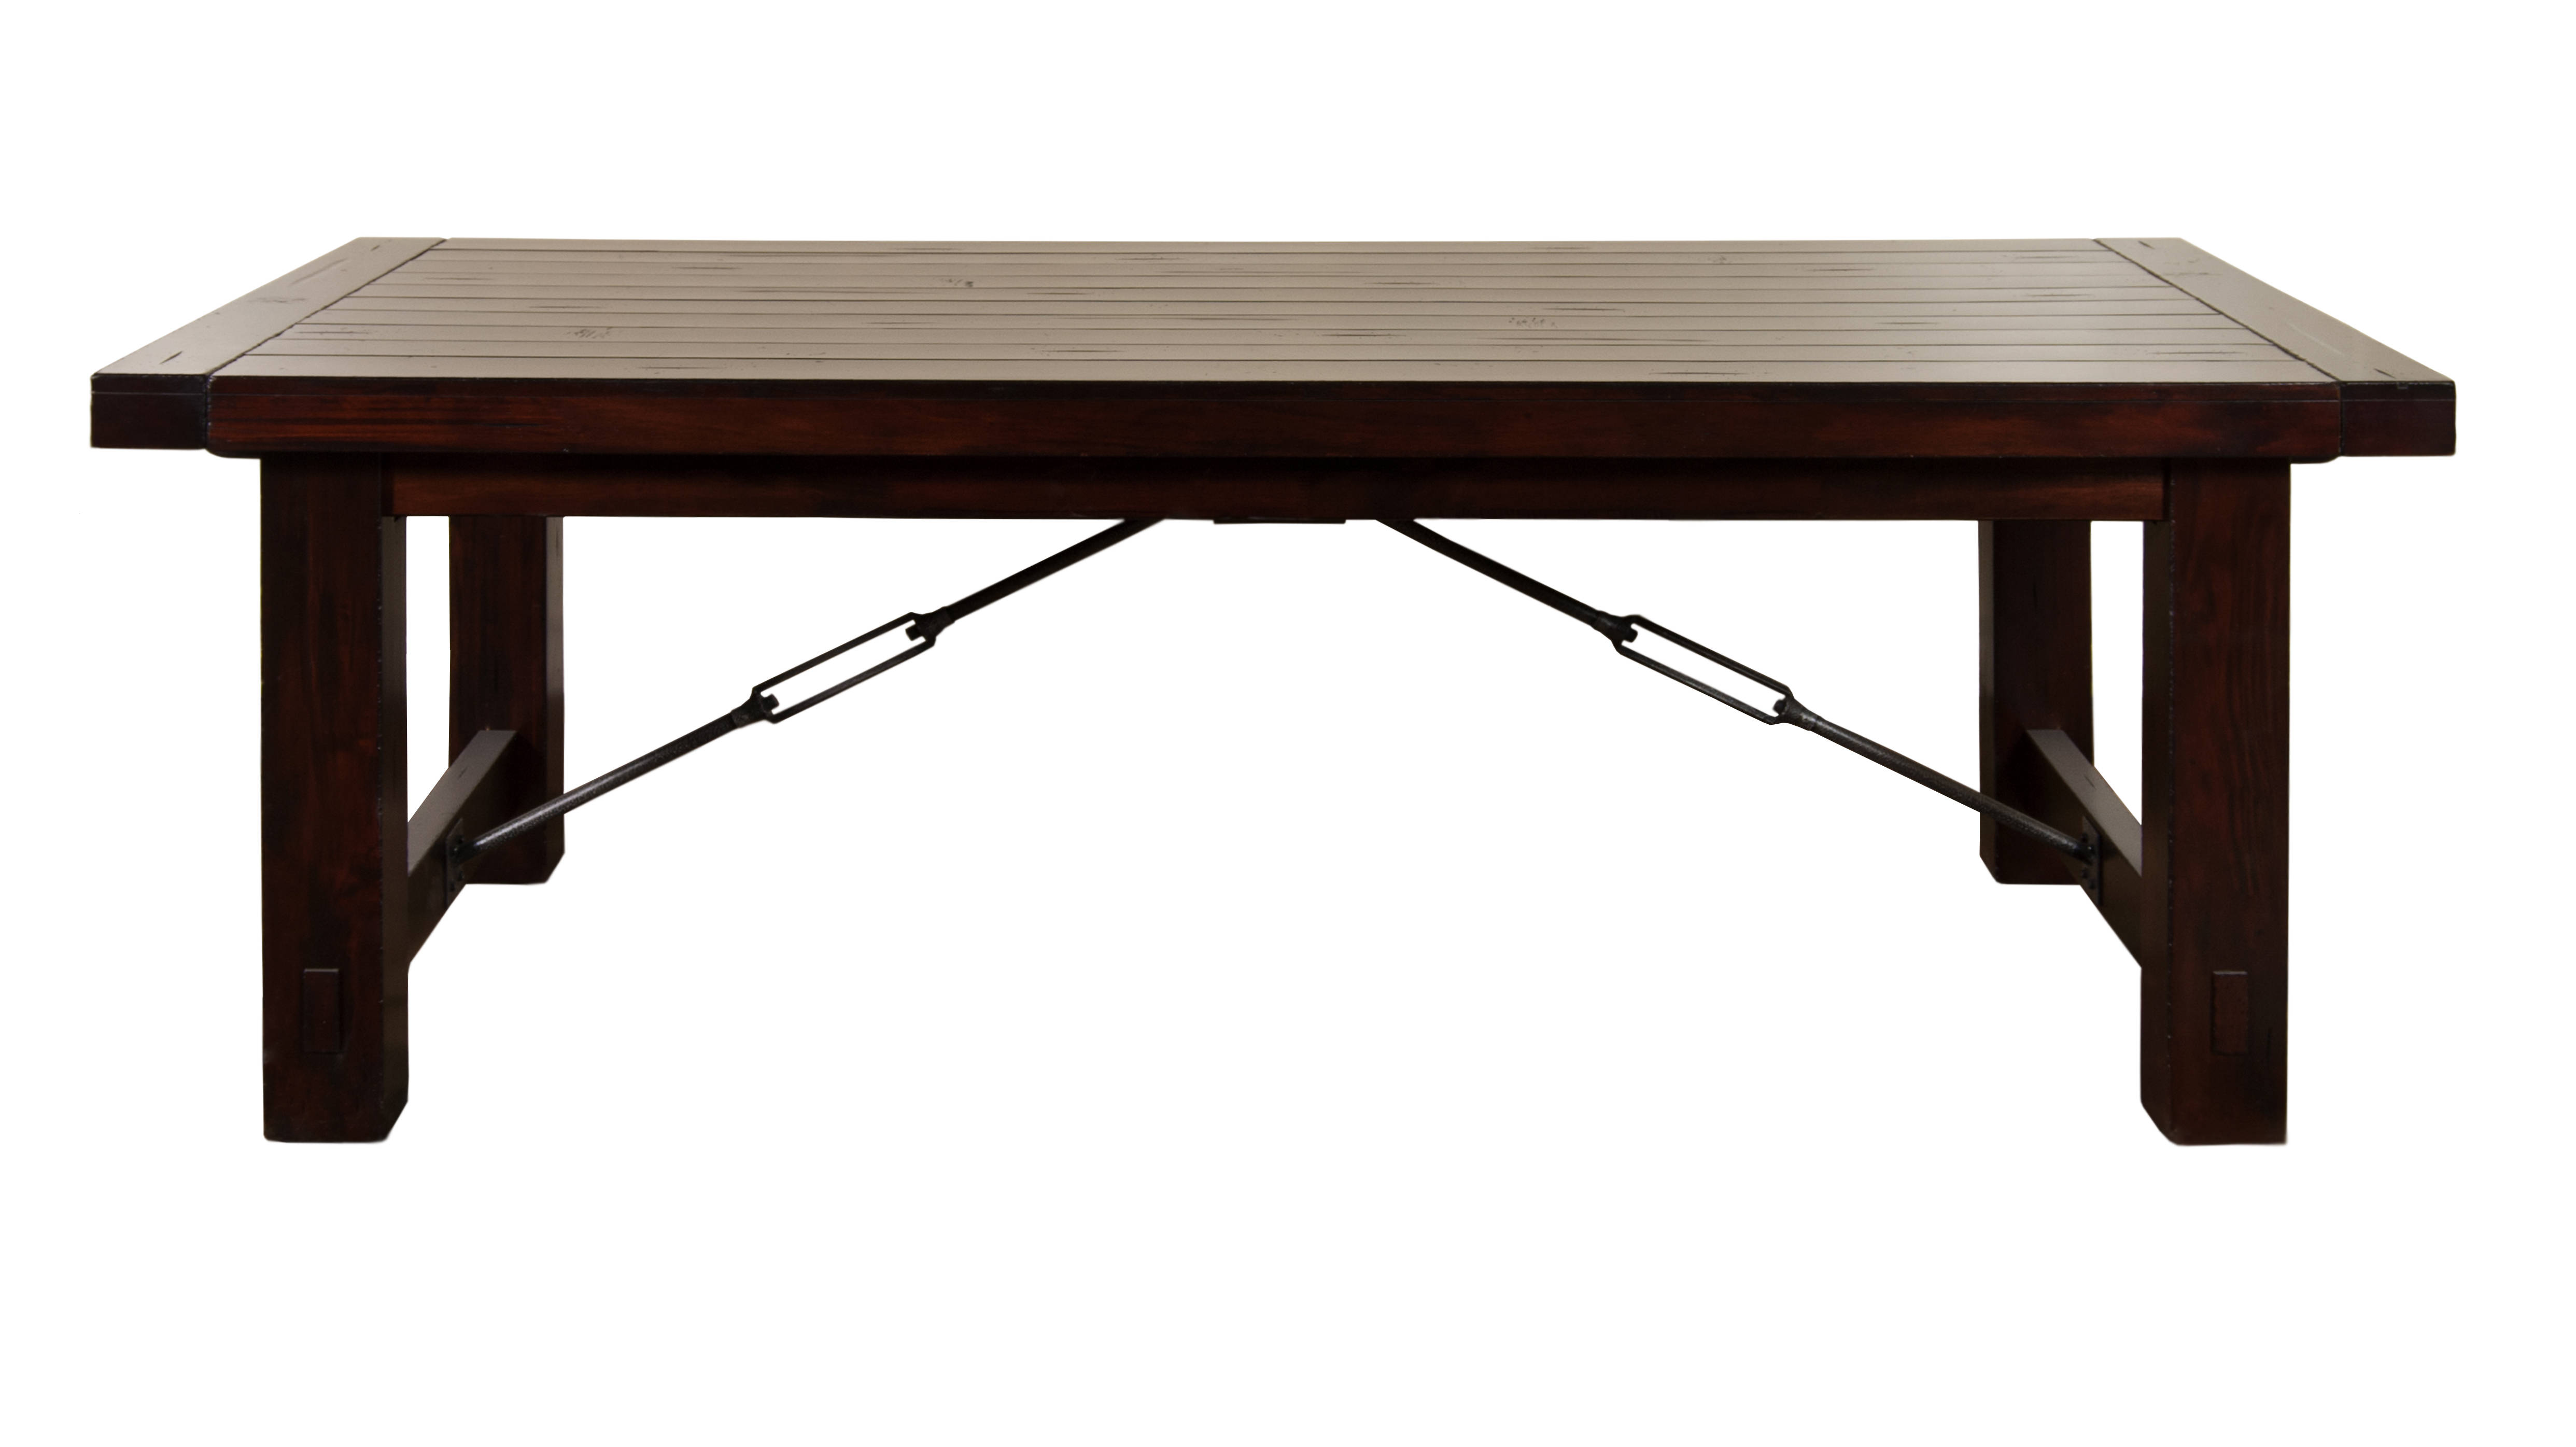 Sunny Designs Vineyard Rustic Mahogany Extension Table Click To Enlarge ...